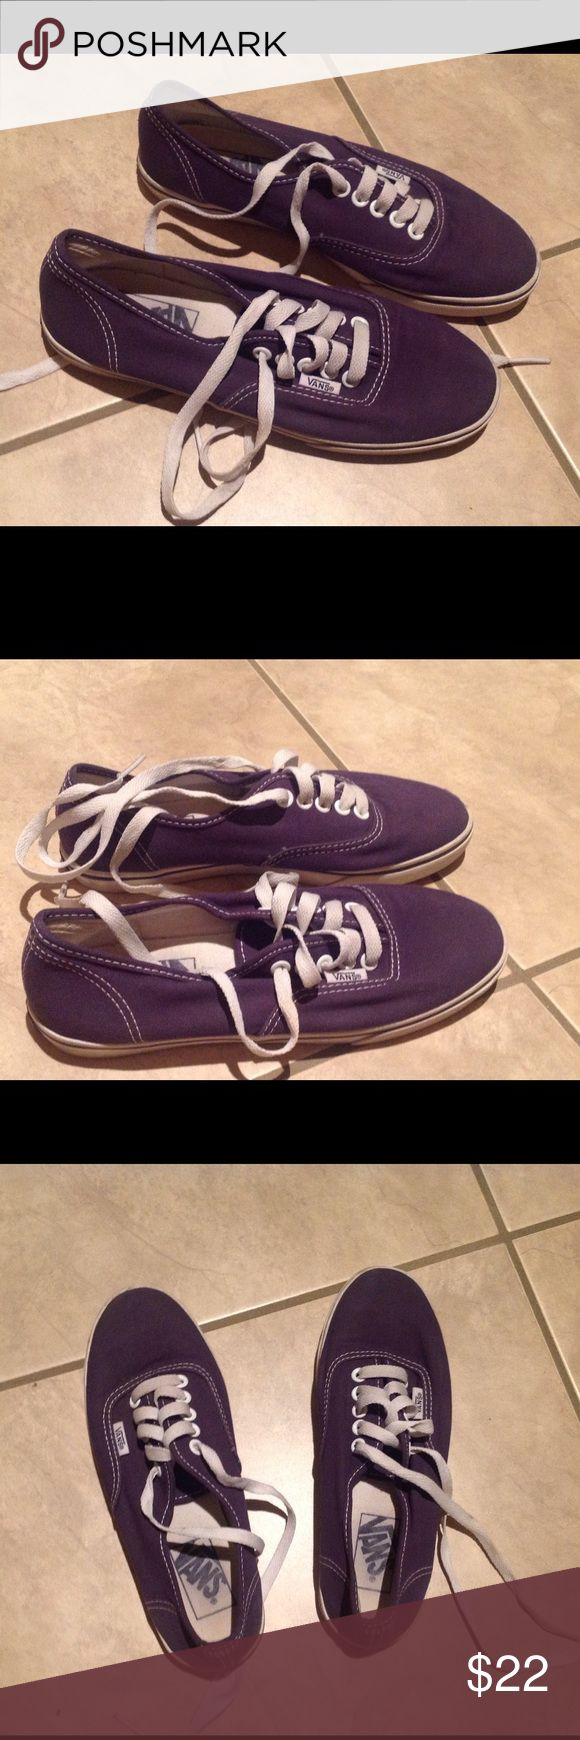 Vans shoes size 6 Used but still looks great! Navy blue Vans Shoes Sneakers